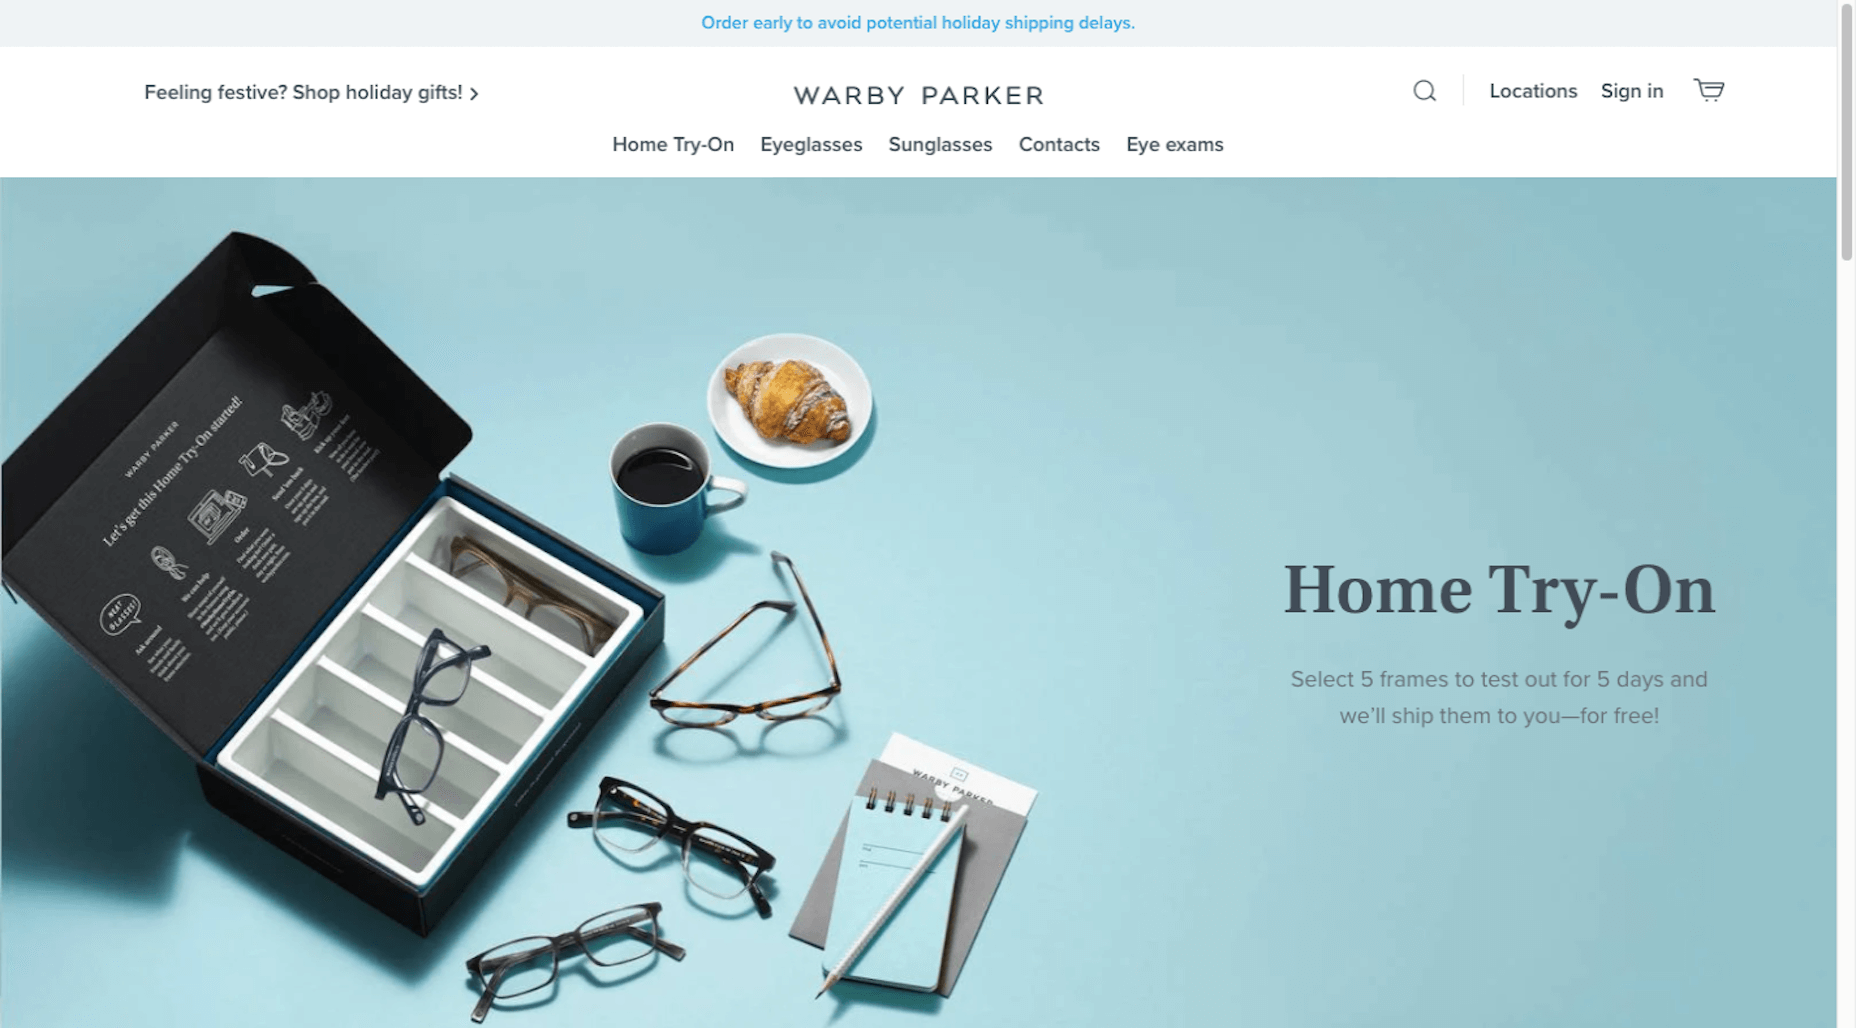 Warby Parker gives online shoppers ability to try 5 pairs of glasses on at home